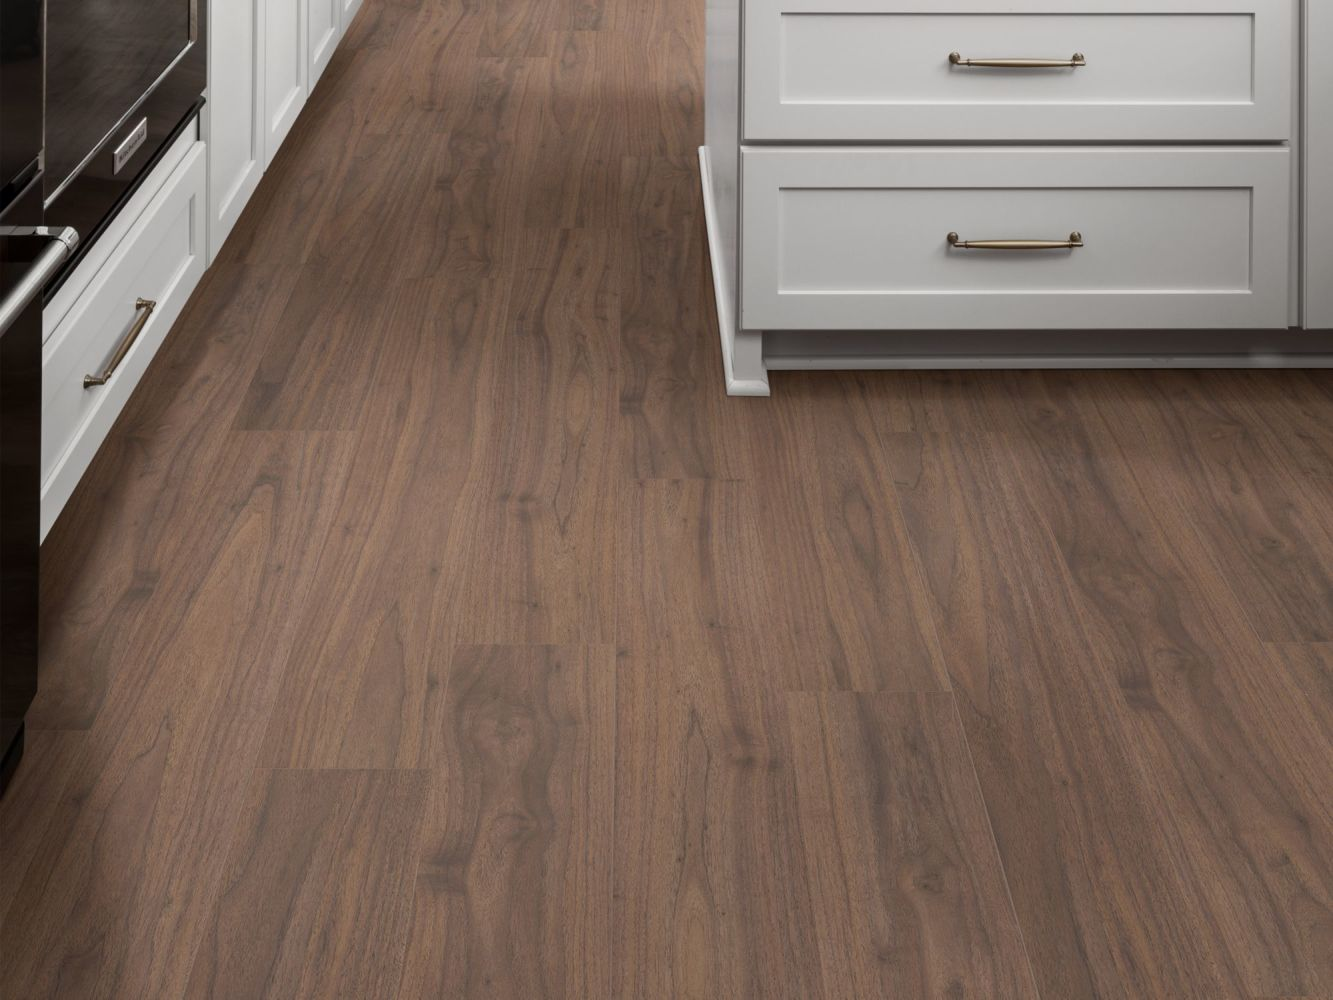 Shaw Floors Resilient Residential Distinction Plus Smoked Walnut 07229_2045V